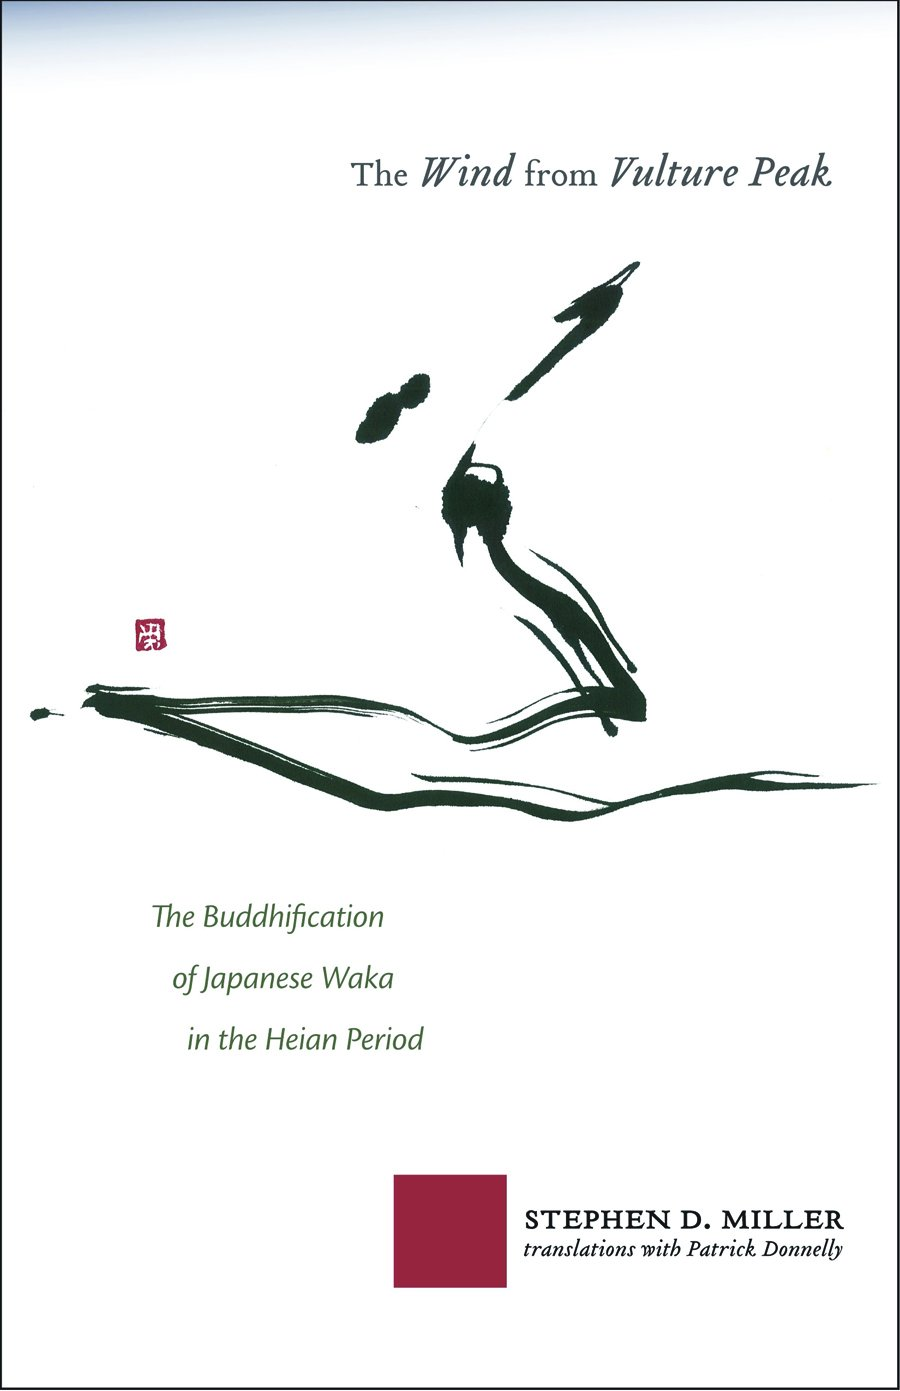 The Wind from Vulture Peak: The Buddhification of Japanese Waka in the Heian Period (Cornell East Asia Series) ebook